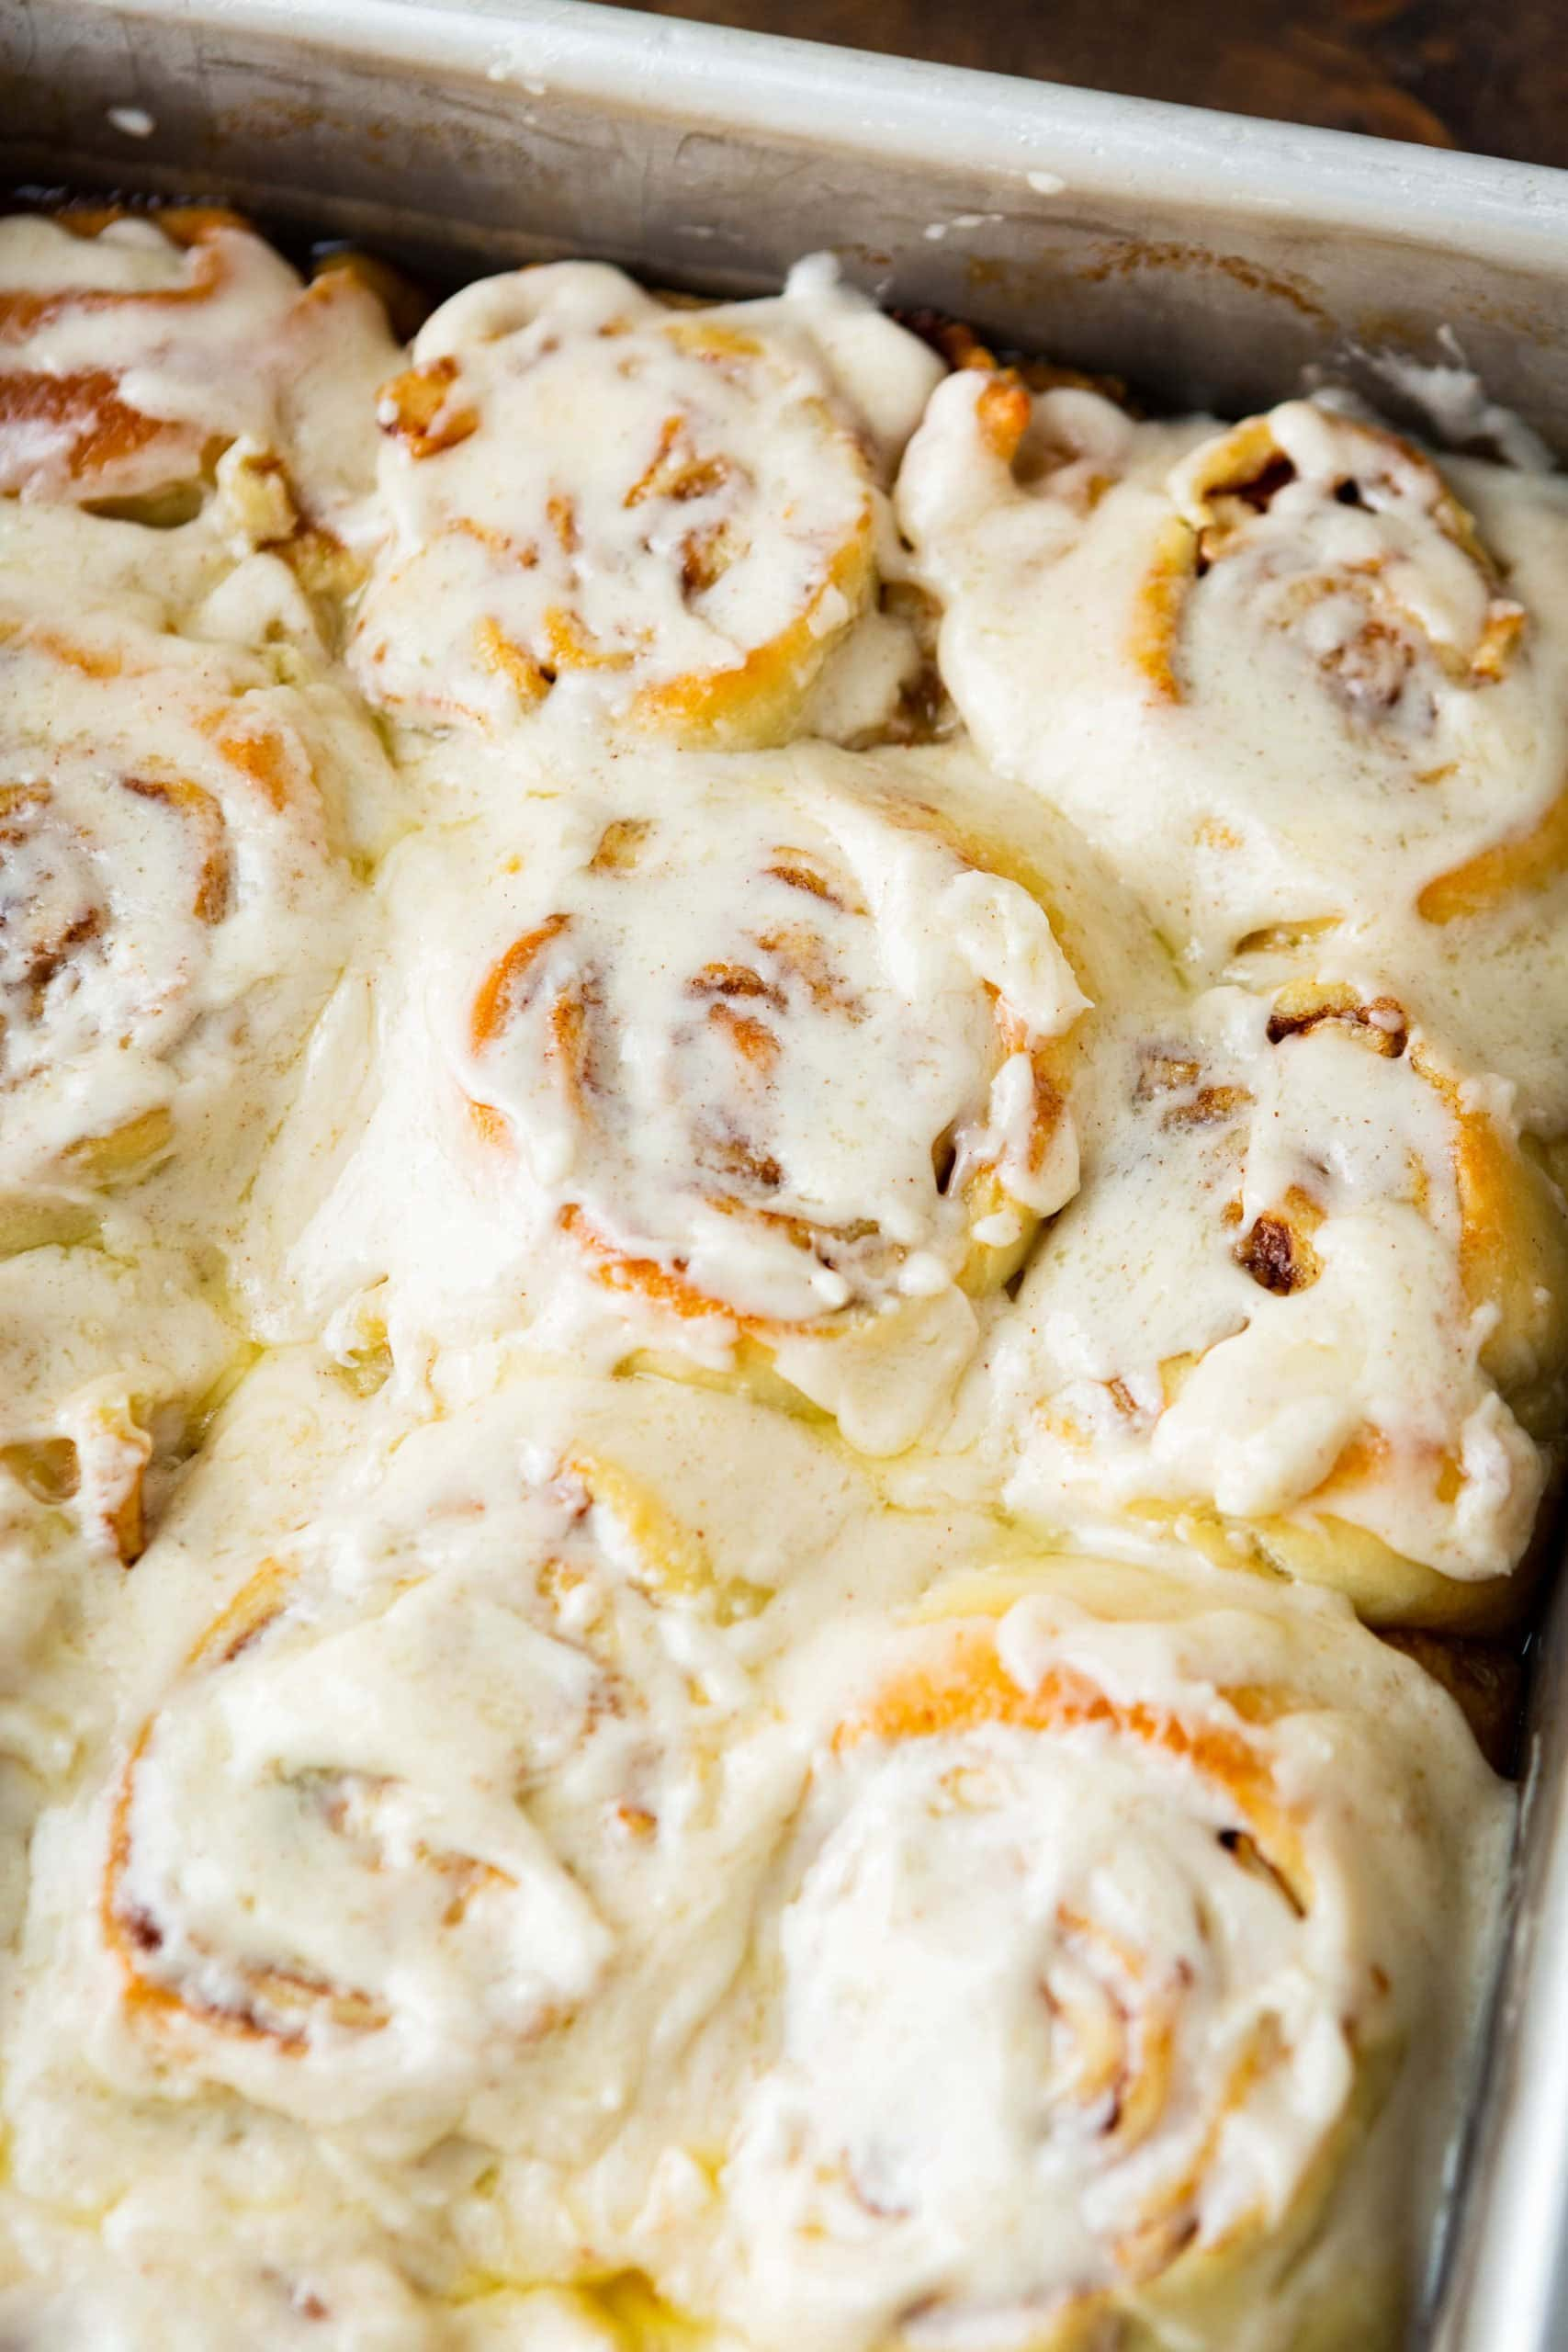 a closeup photo of a pan full of golden apple cinnamon rolls topped with melty browned butter frosting.